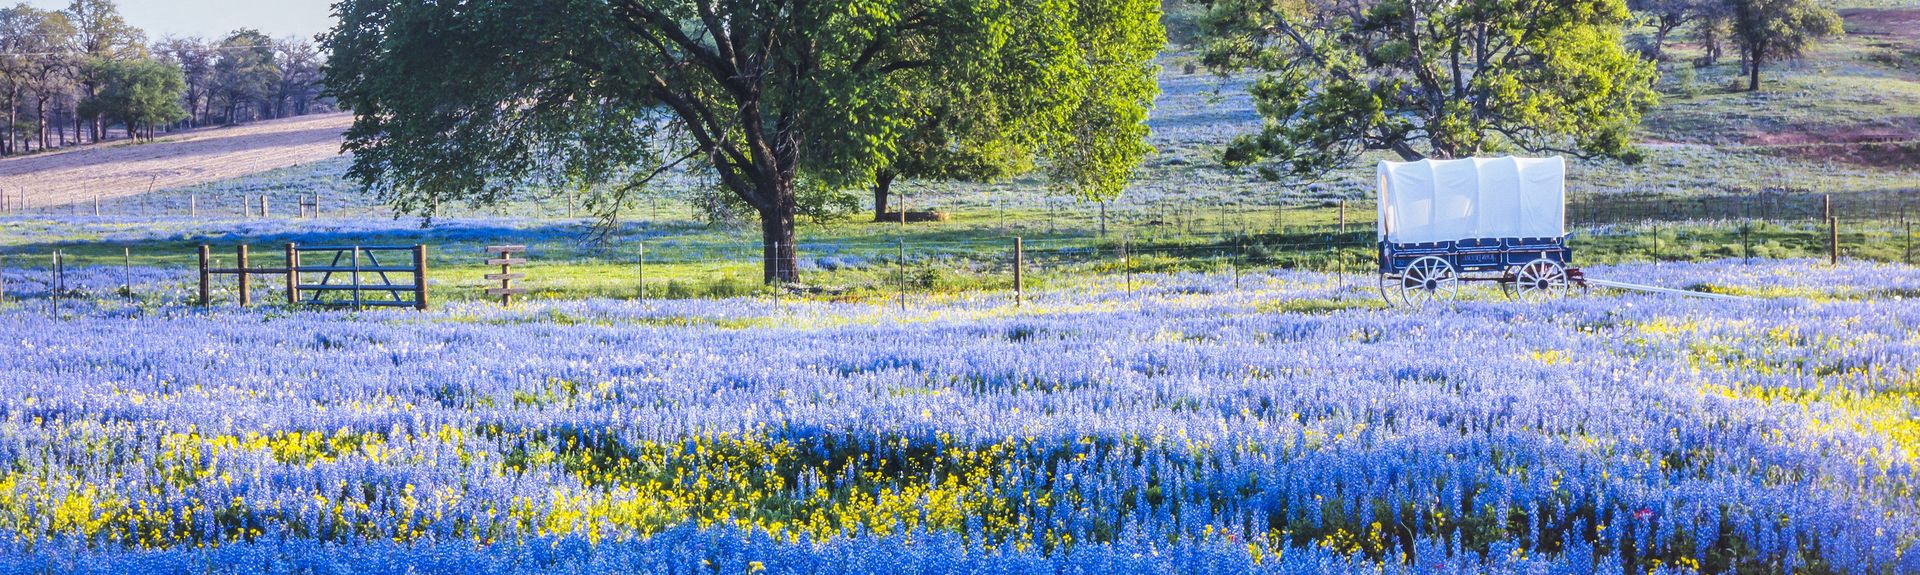 Hill Country, Texas, USA